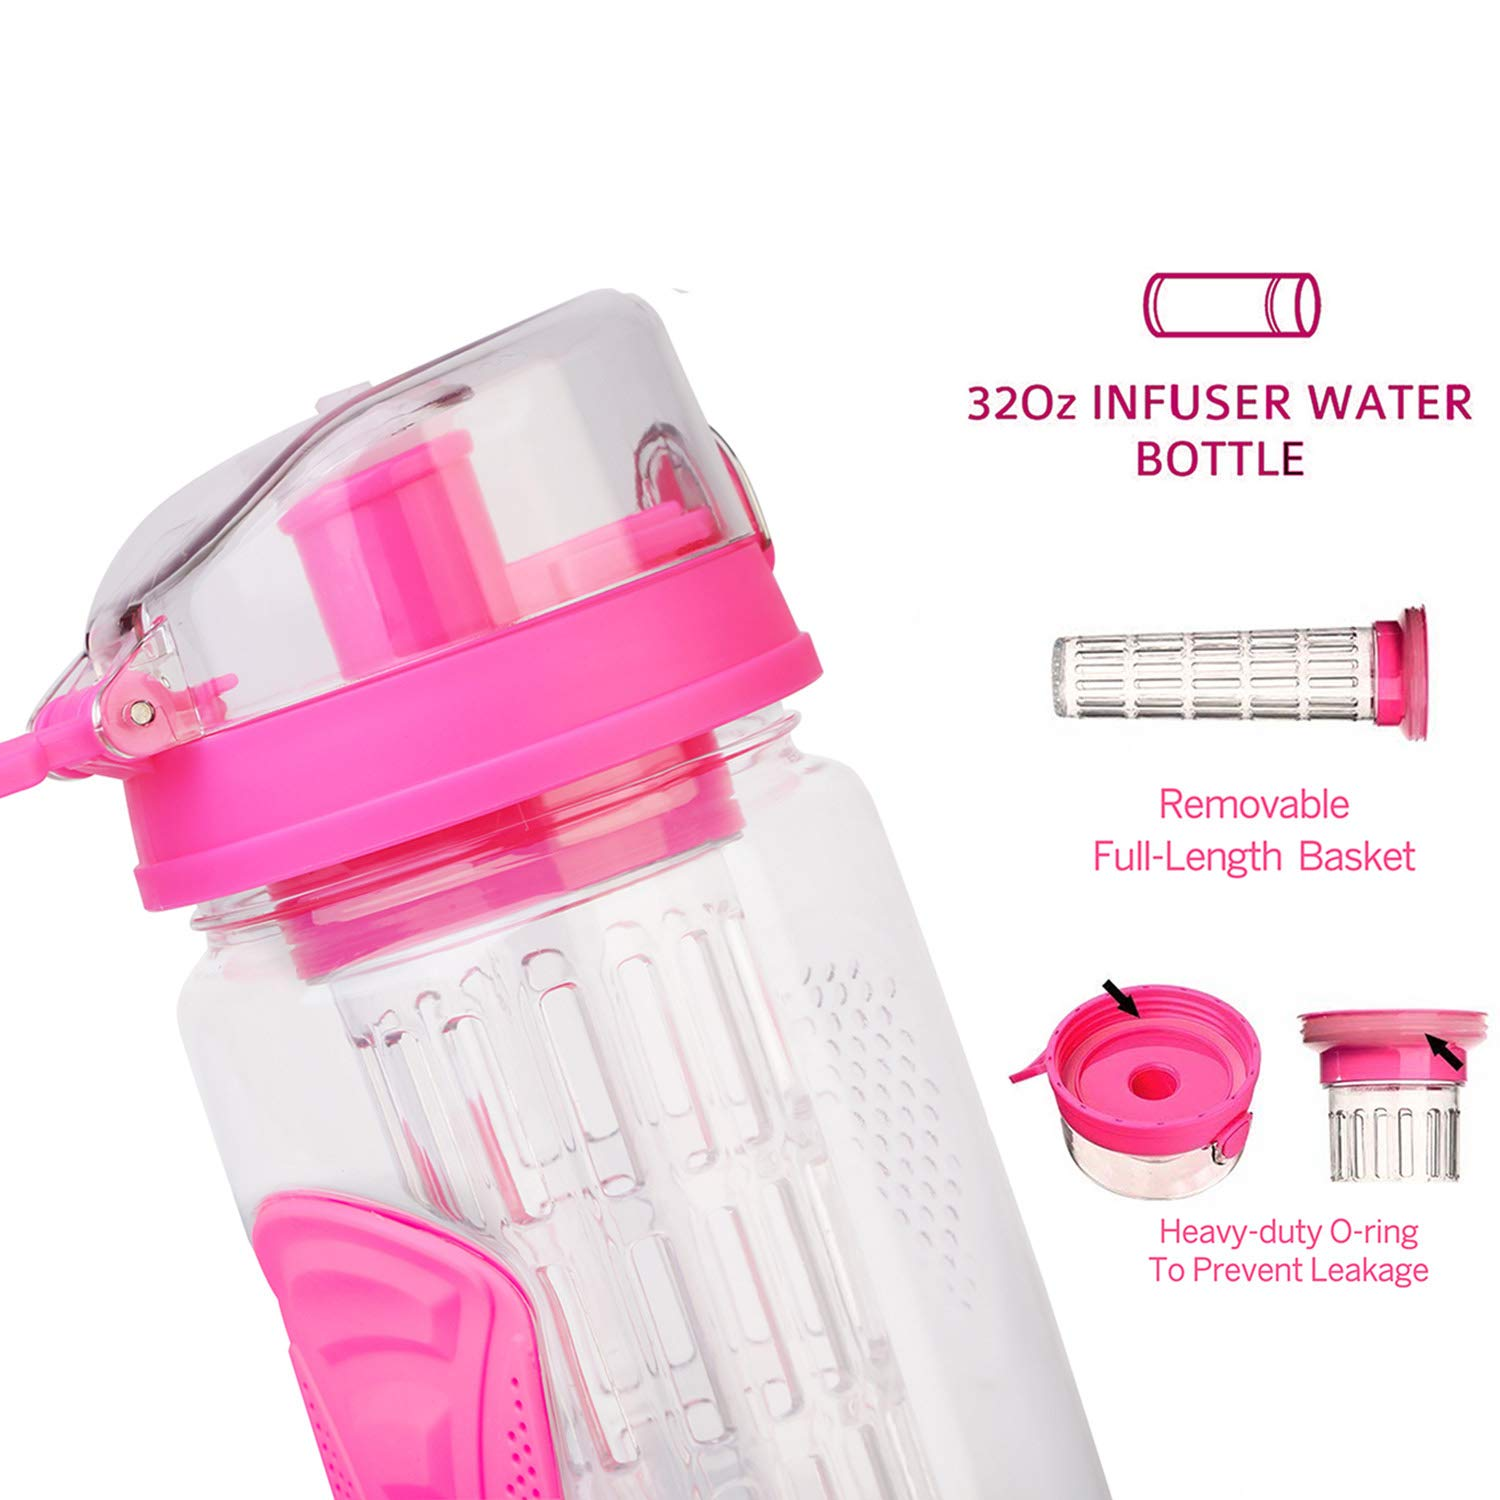 TeqHome Ultra Portable Fruit Infuser Water Bottle 32 OZ Sports Bottle Travel /& to-Go Drinkware Water Bottles Flip Top Lid /& Dual Anti-Slip Grips with Thumb Releasing Button